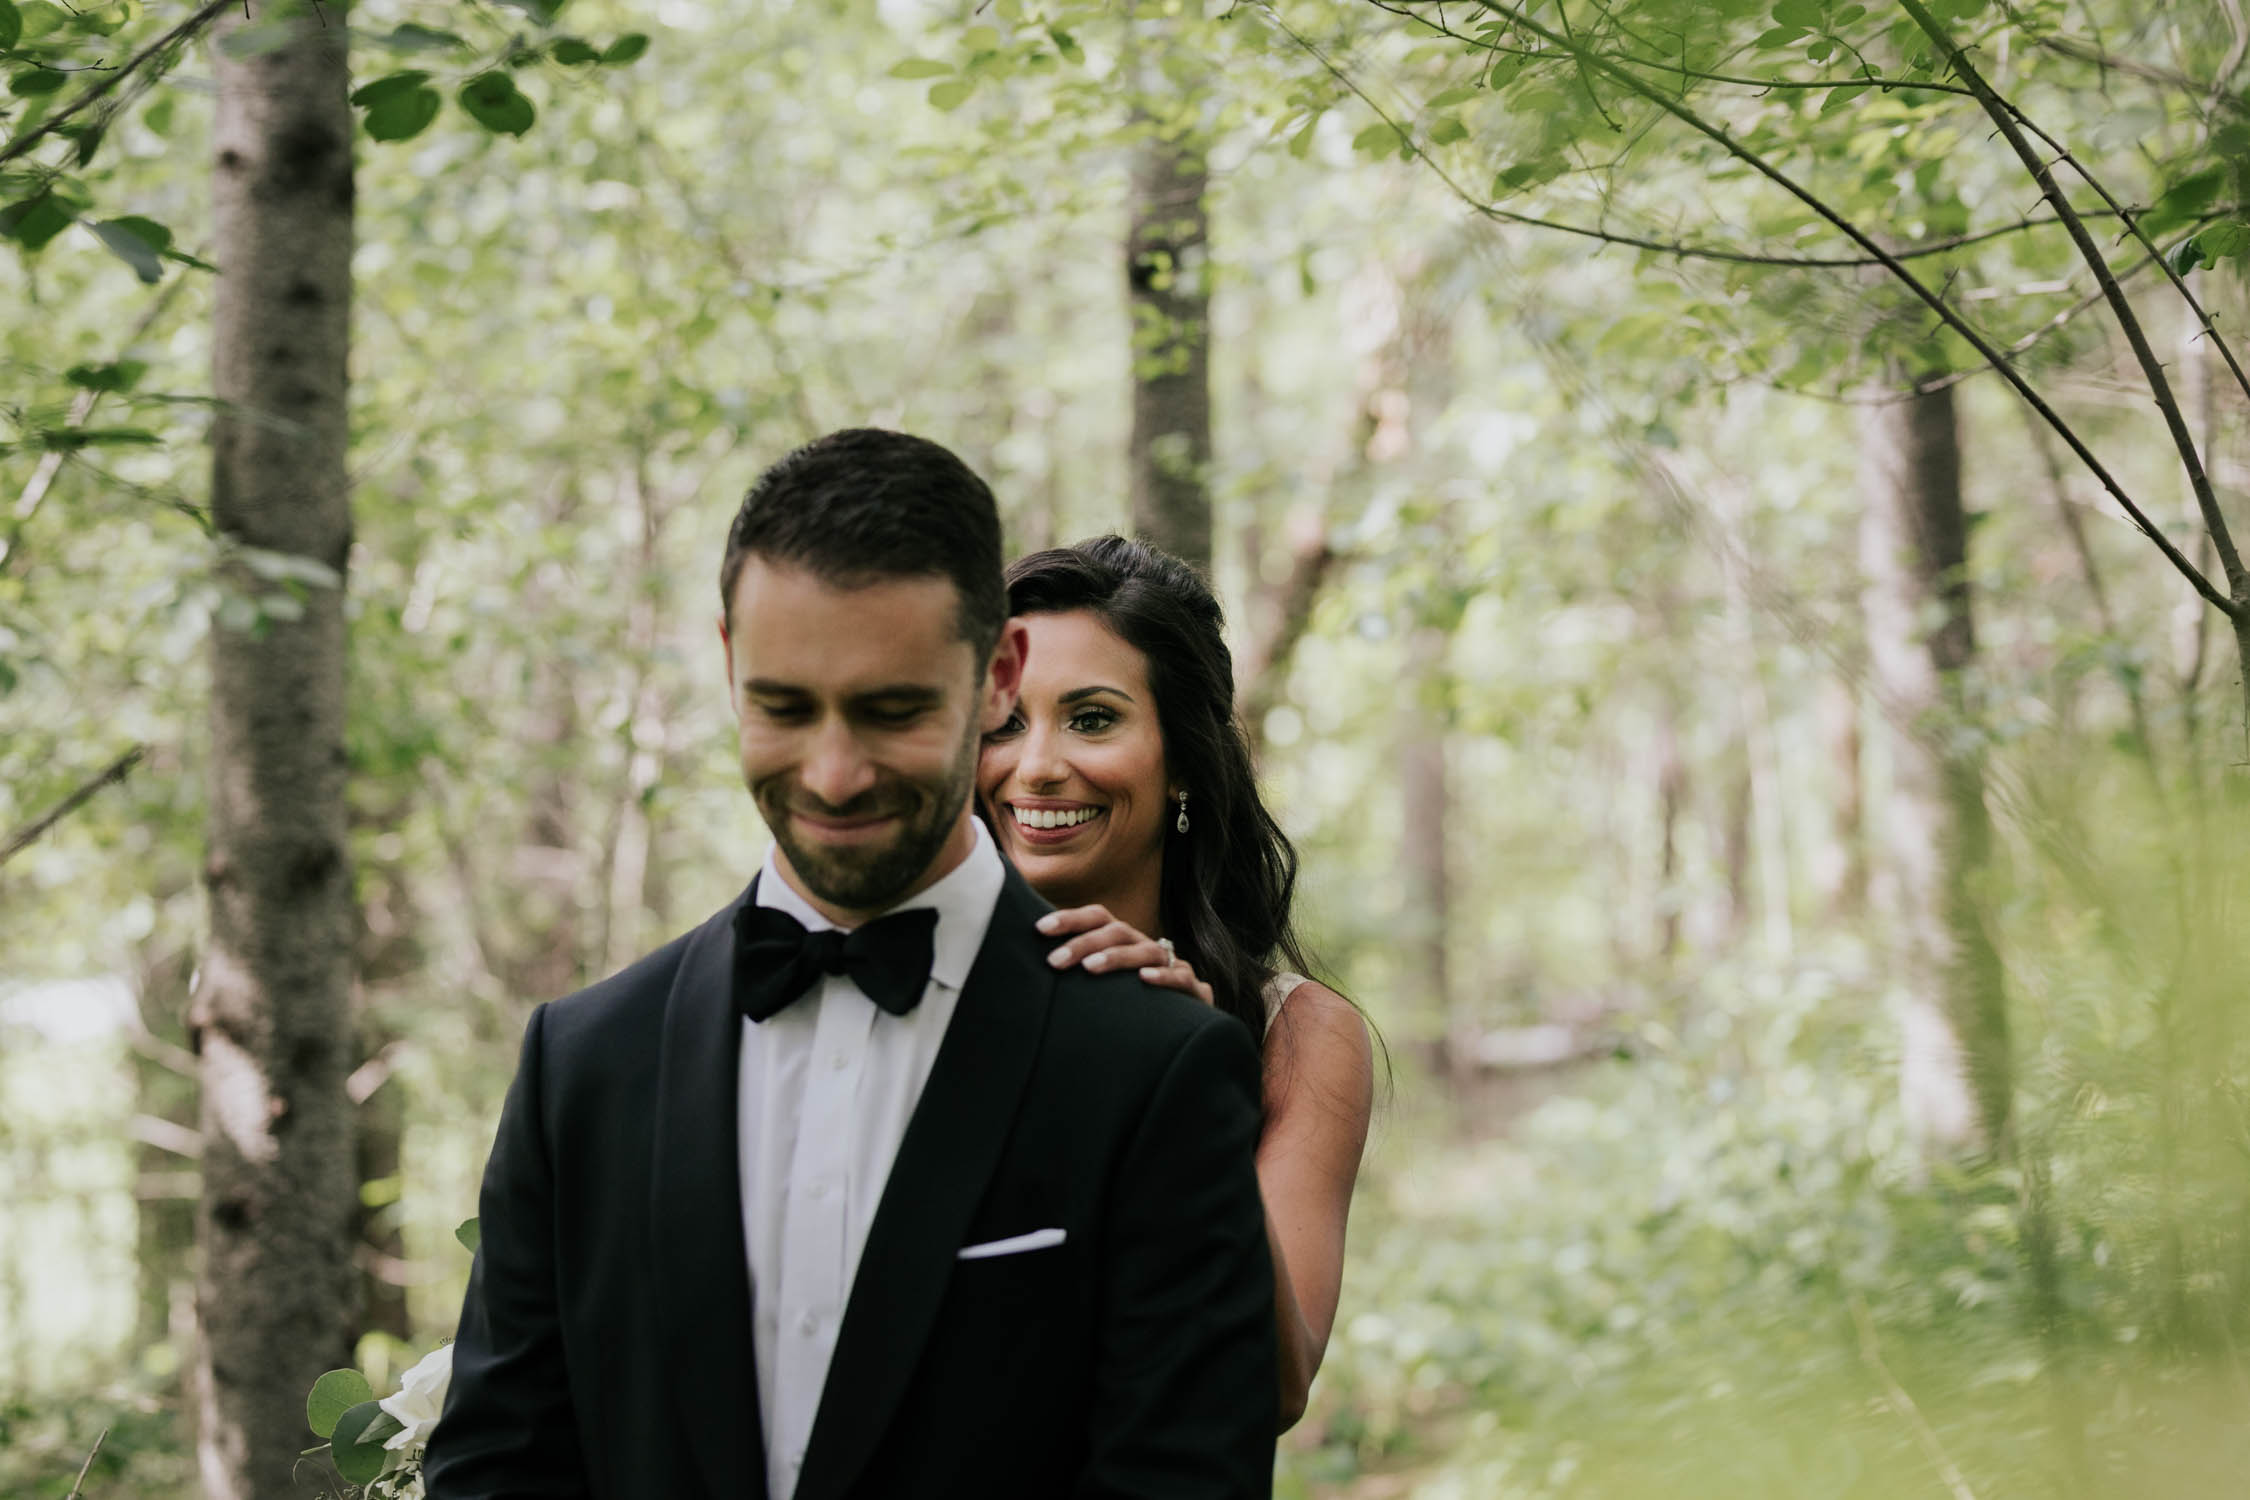 Groom waiting for his bride and their first look reveal in the forest at Fairy Lake Park in Newmarket before their wedding at Madsen's Greenhouse